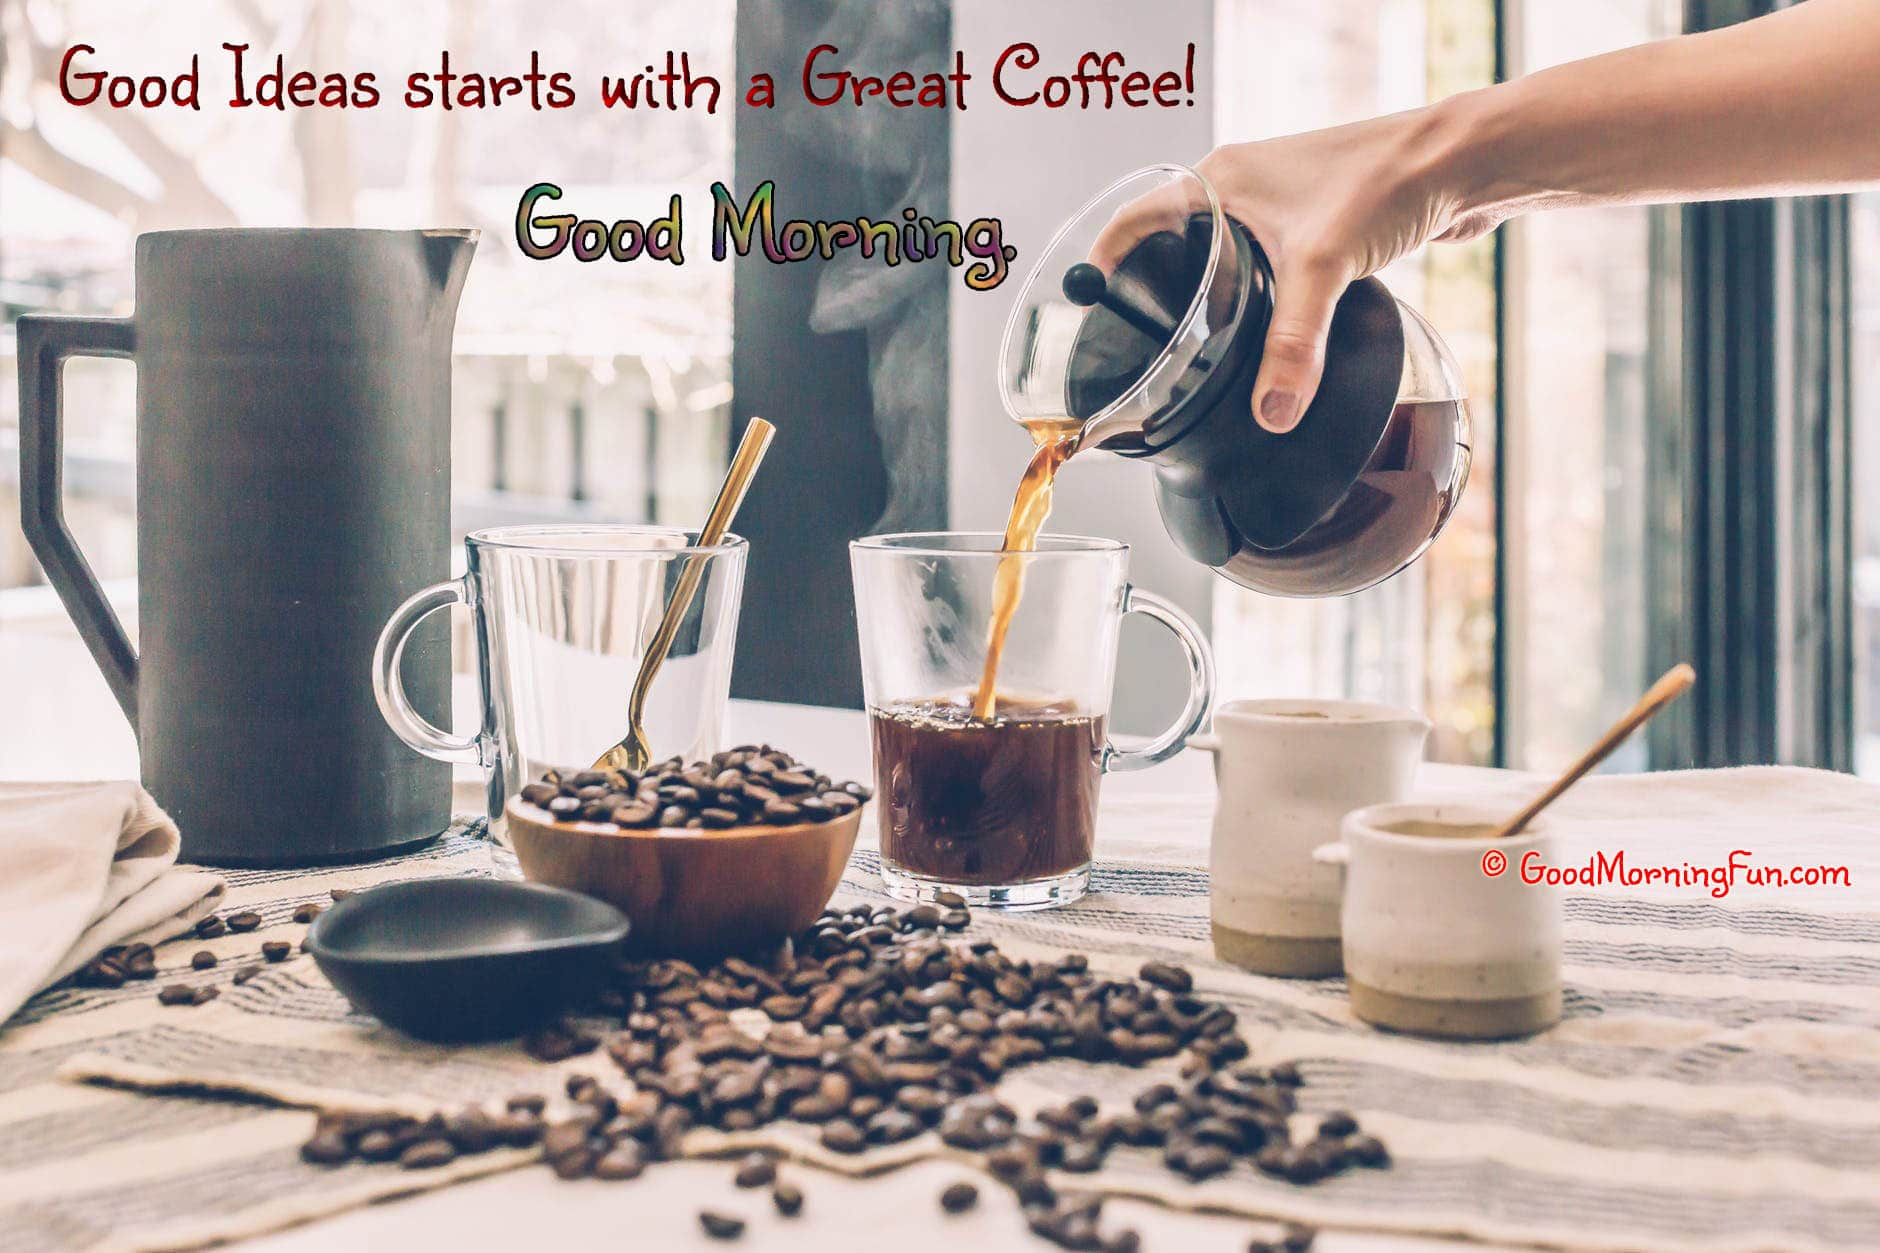 Inspirational Coffee Quotes With Good Morning Coffee Images Good Morning Fun